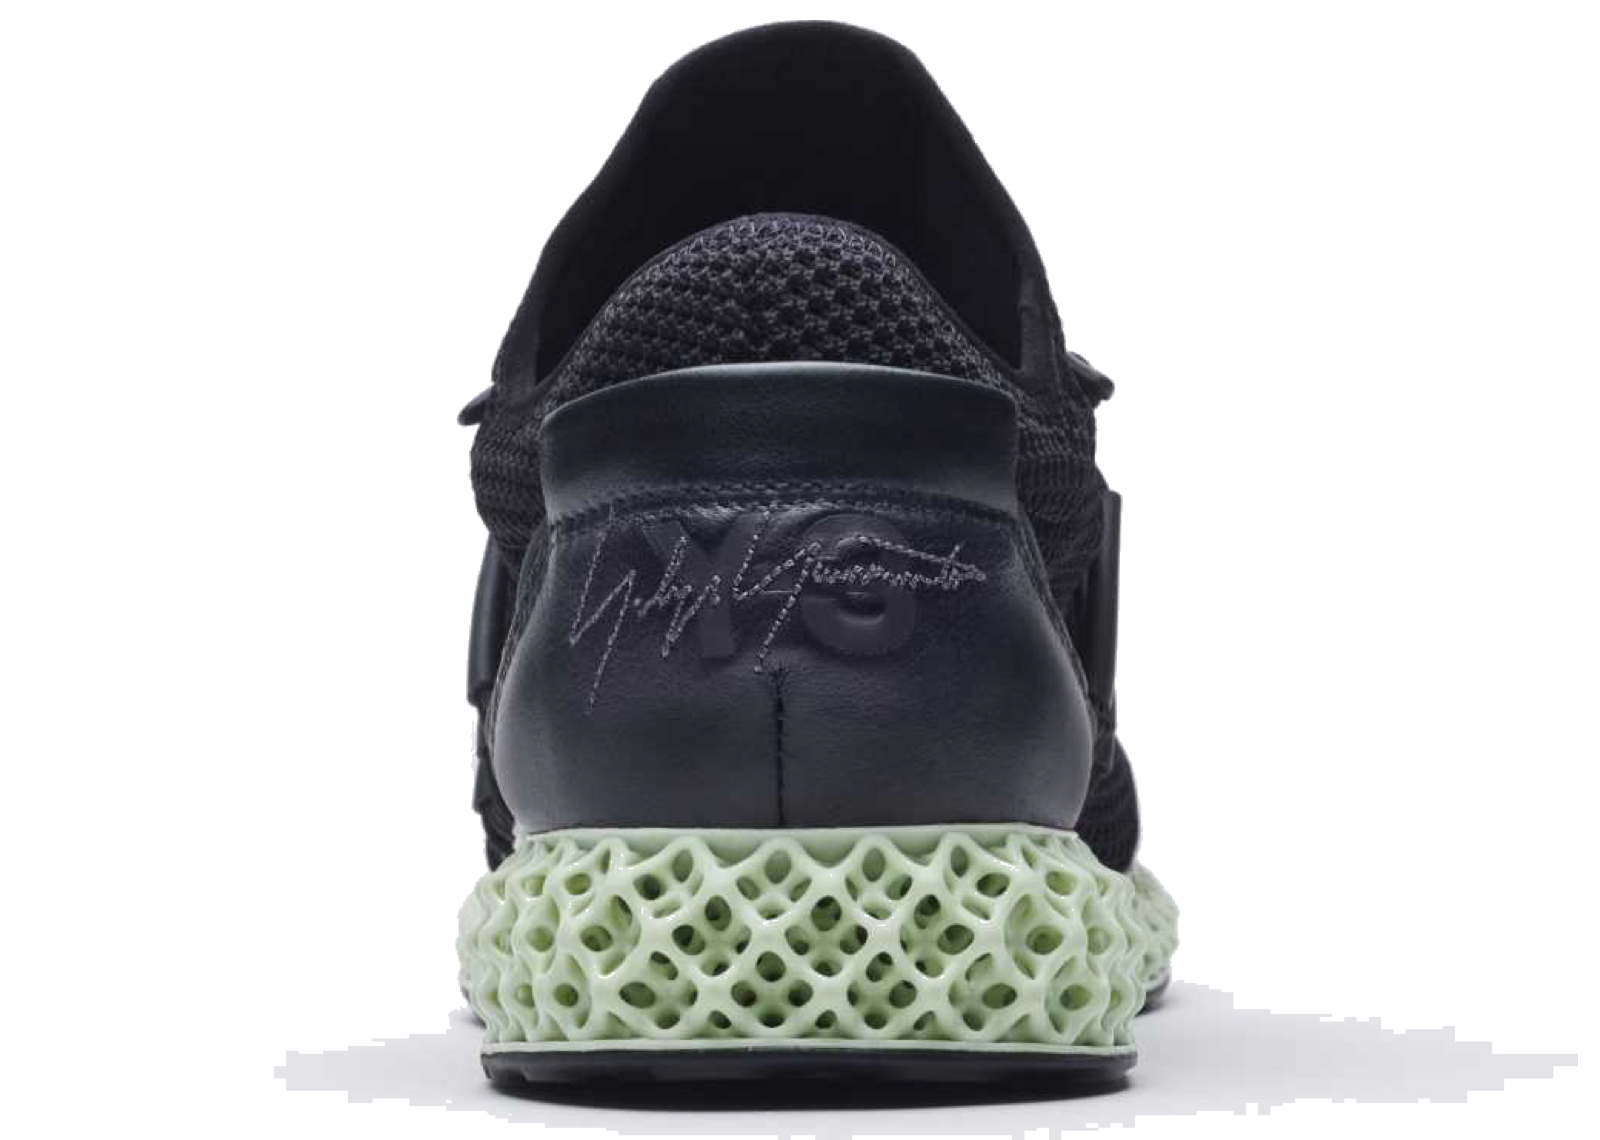 outlet store 55abc 5ccad adidas Y-3 Runner 4D II Black - 1